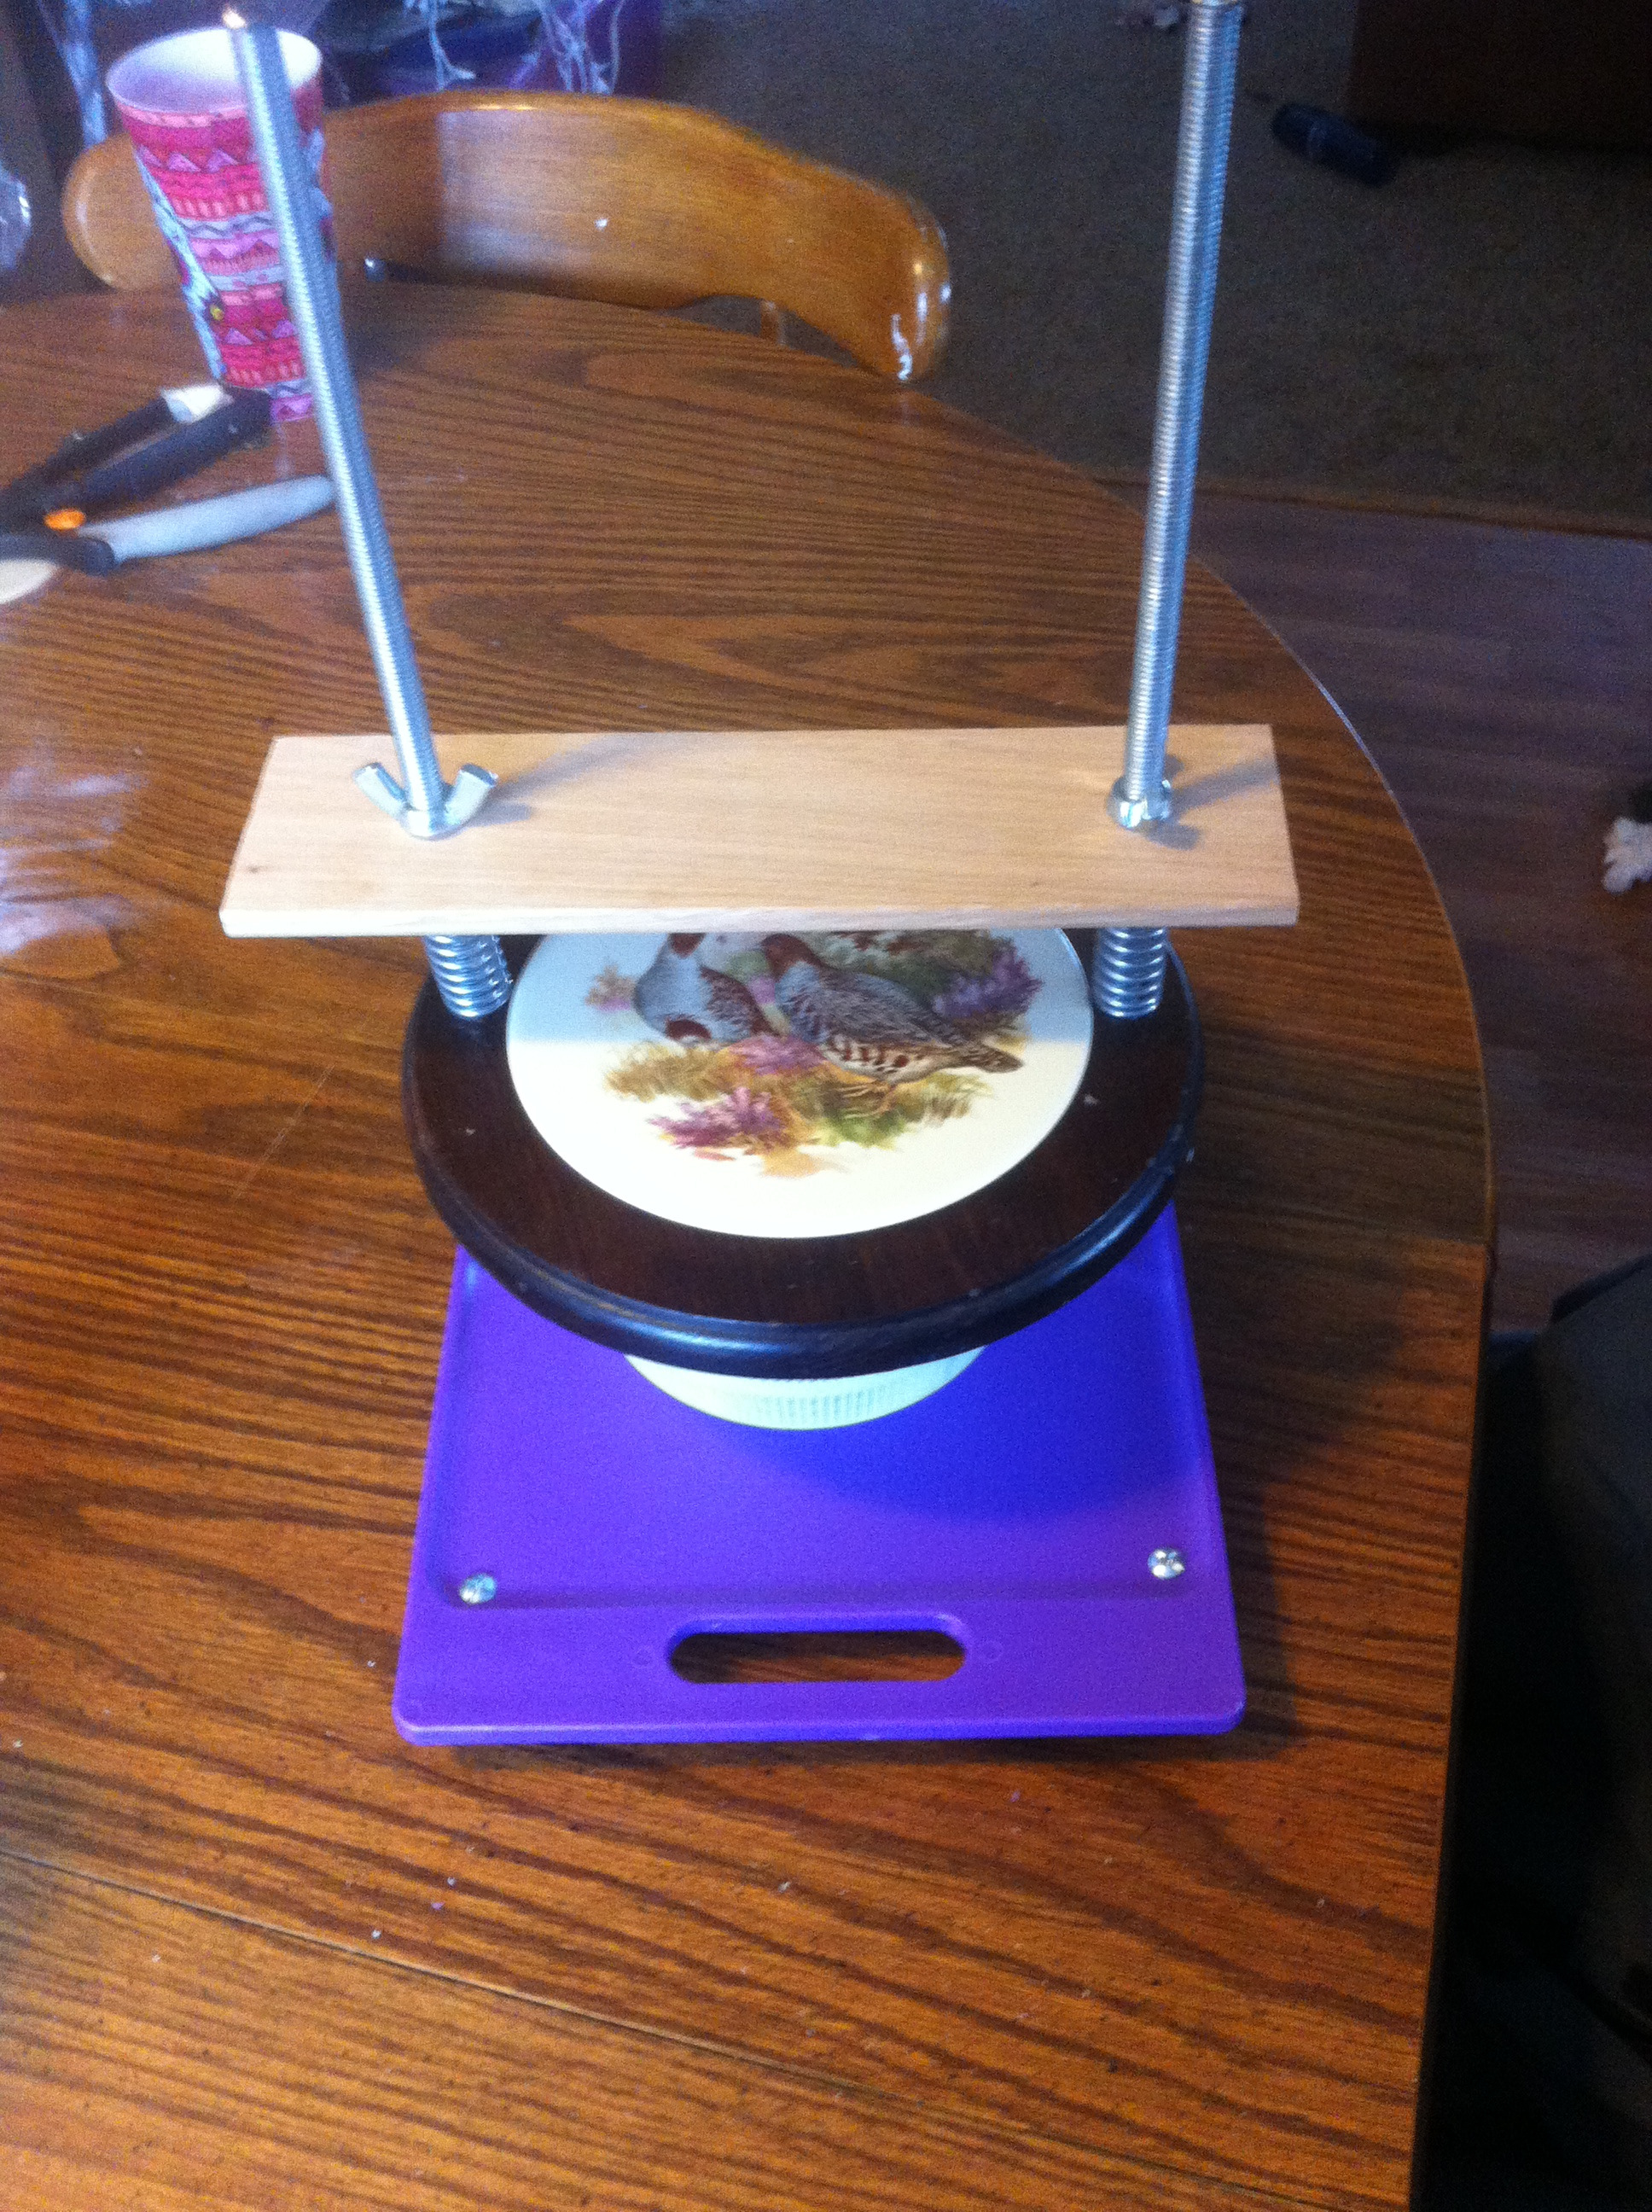 A Simple and Inexpensive Cheese Press